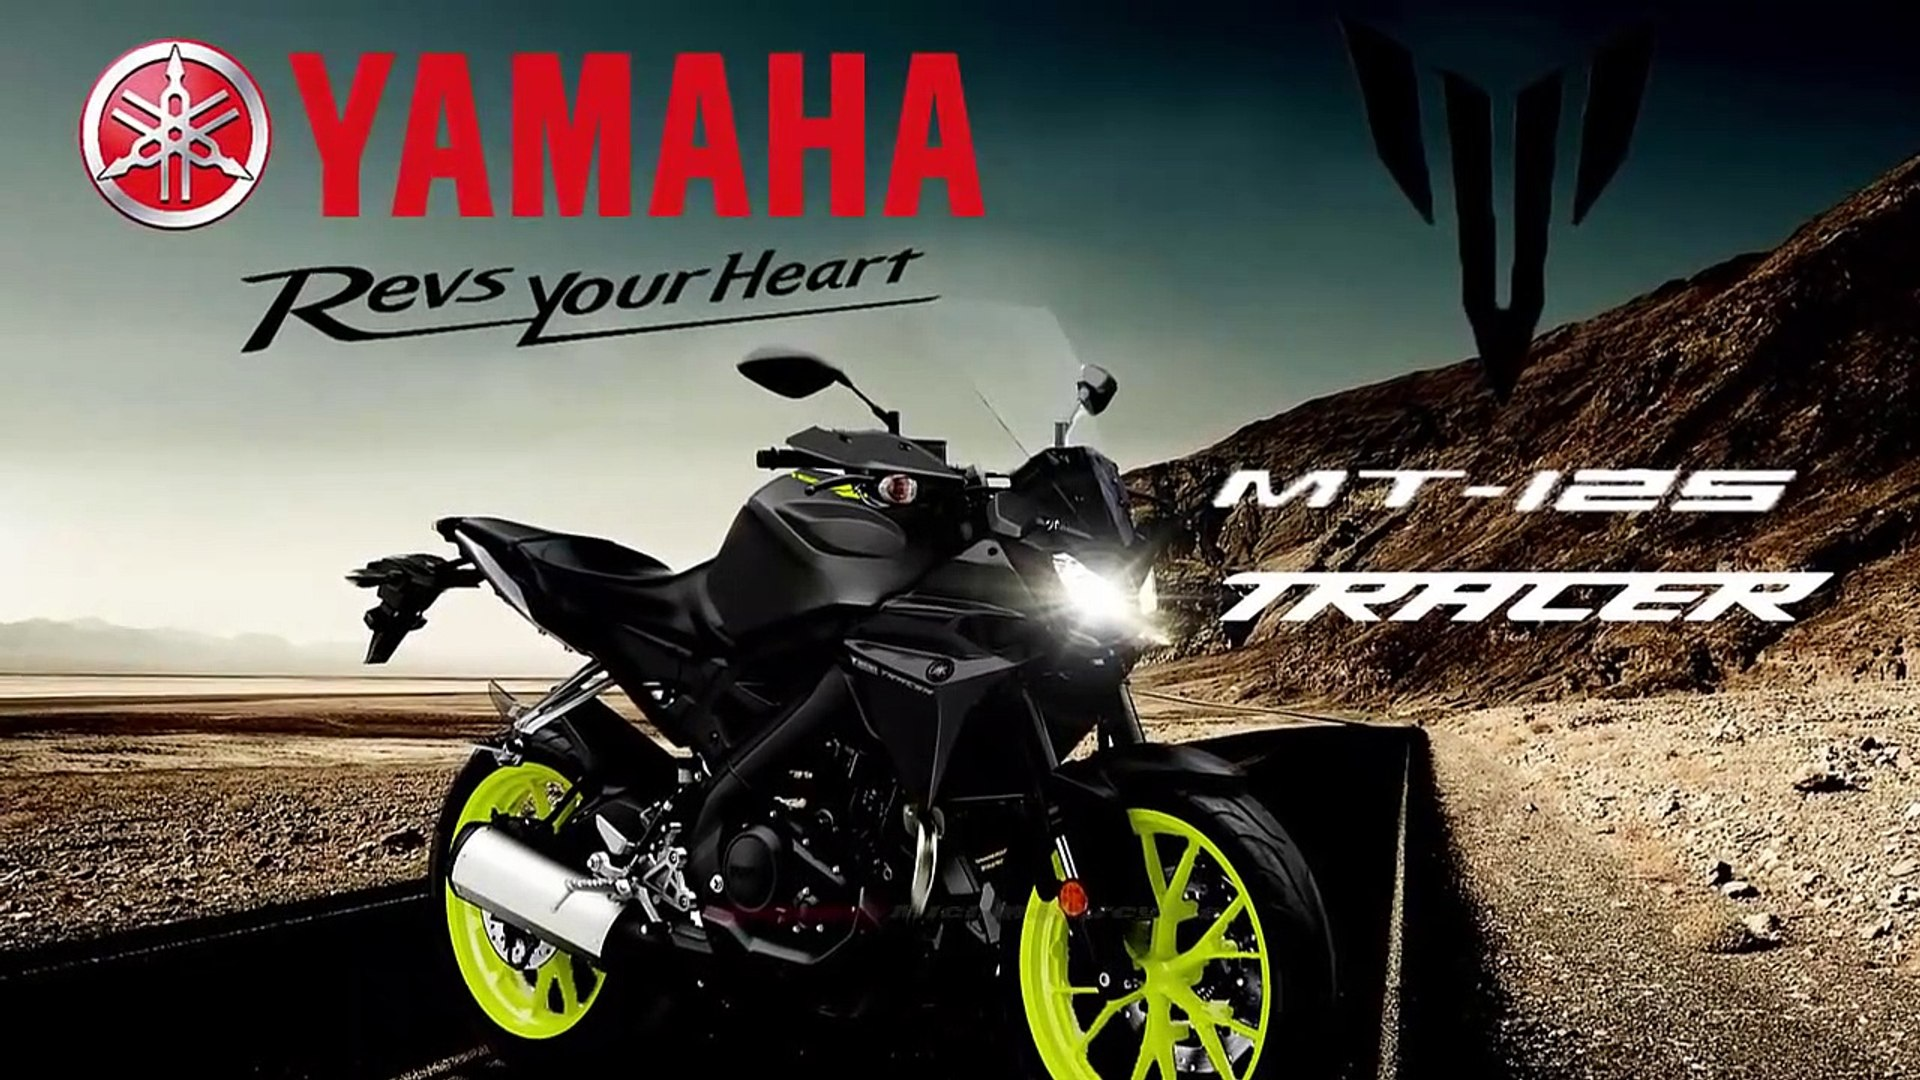 2019 Yamaha MT-125 Trace Sport Touring Version in Europe and North America | Yamaha MT-125 Tracer